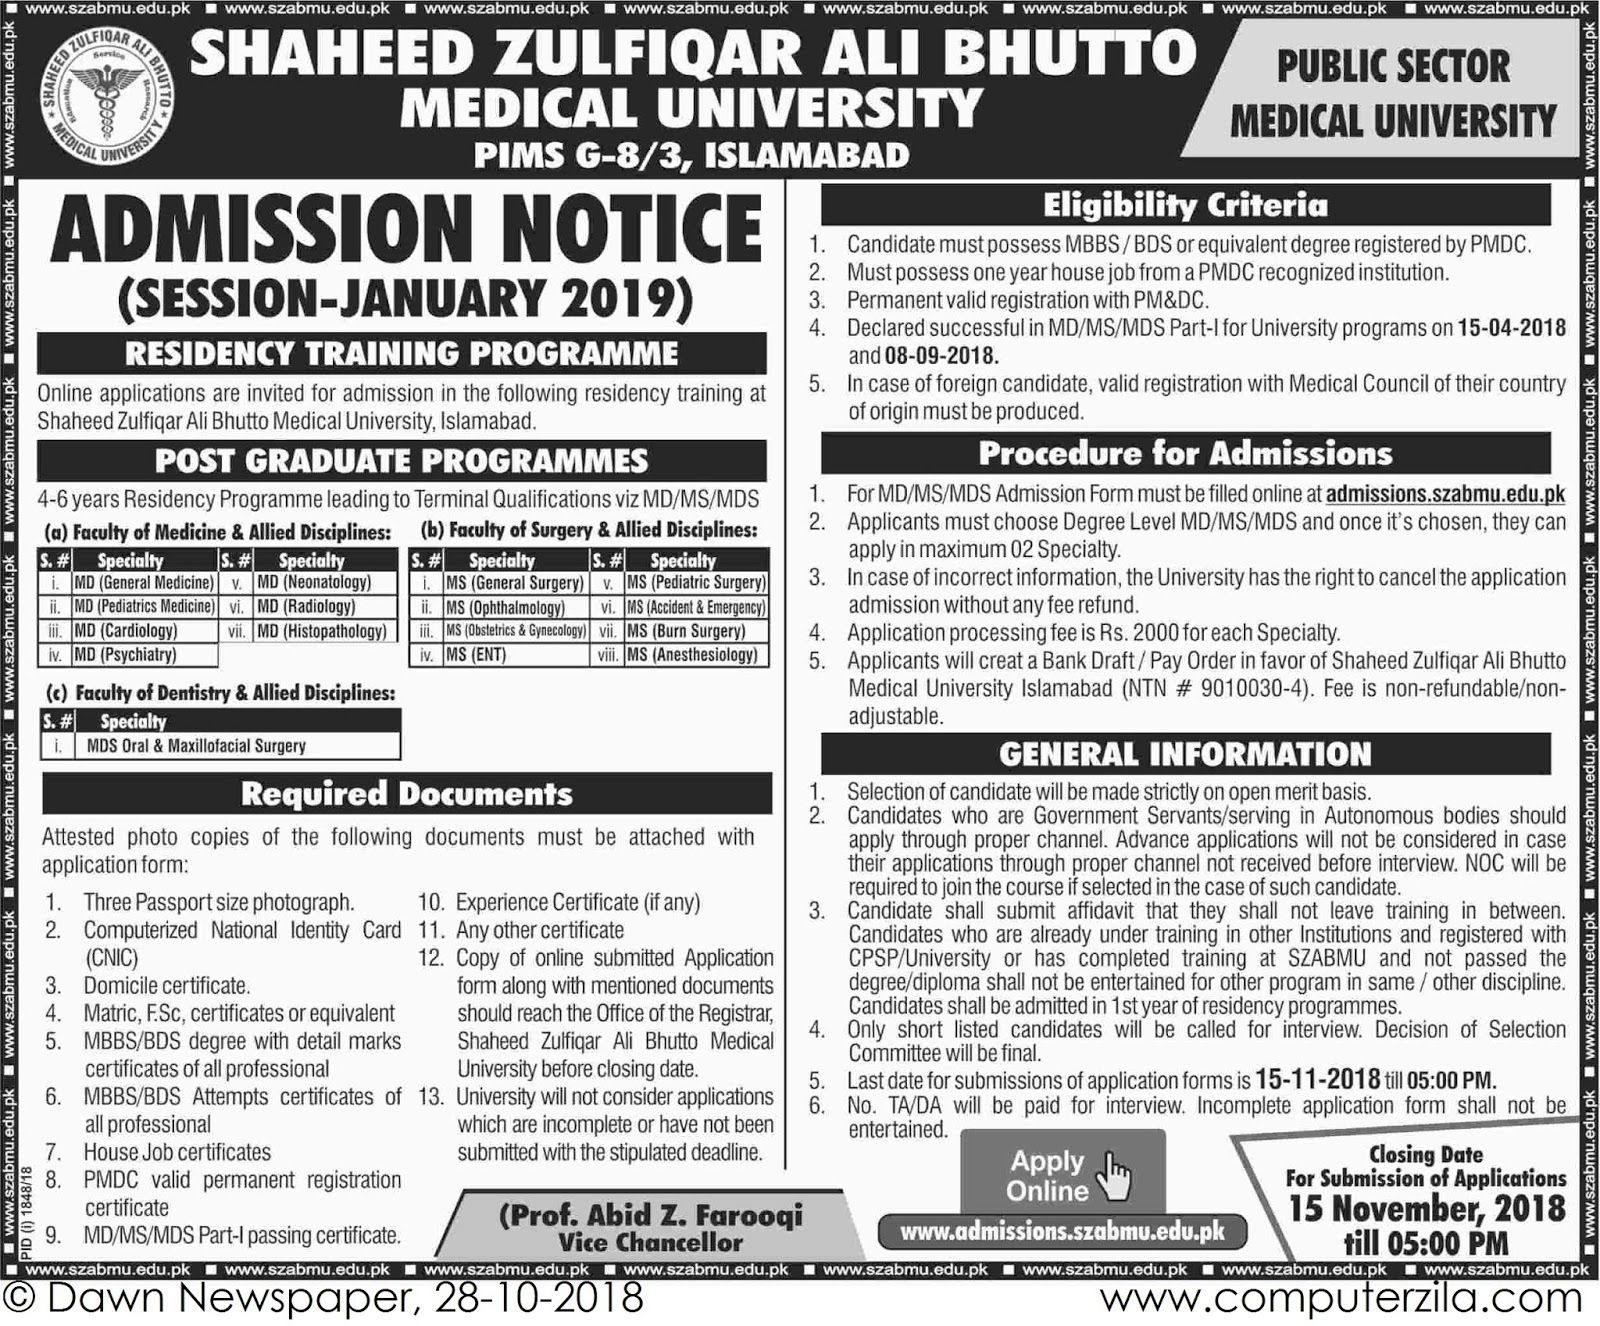 Admissions Open For Spring 2019 At SZABMU Islamabad Campus